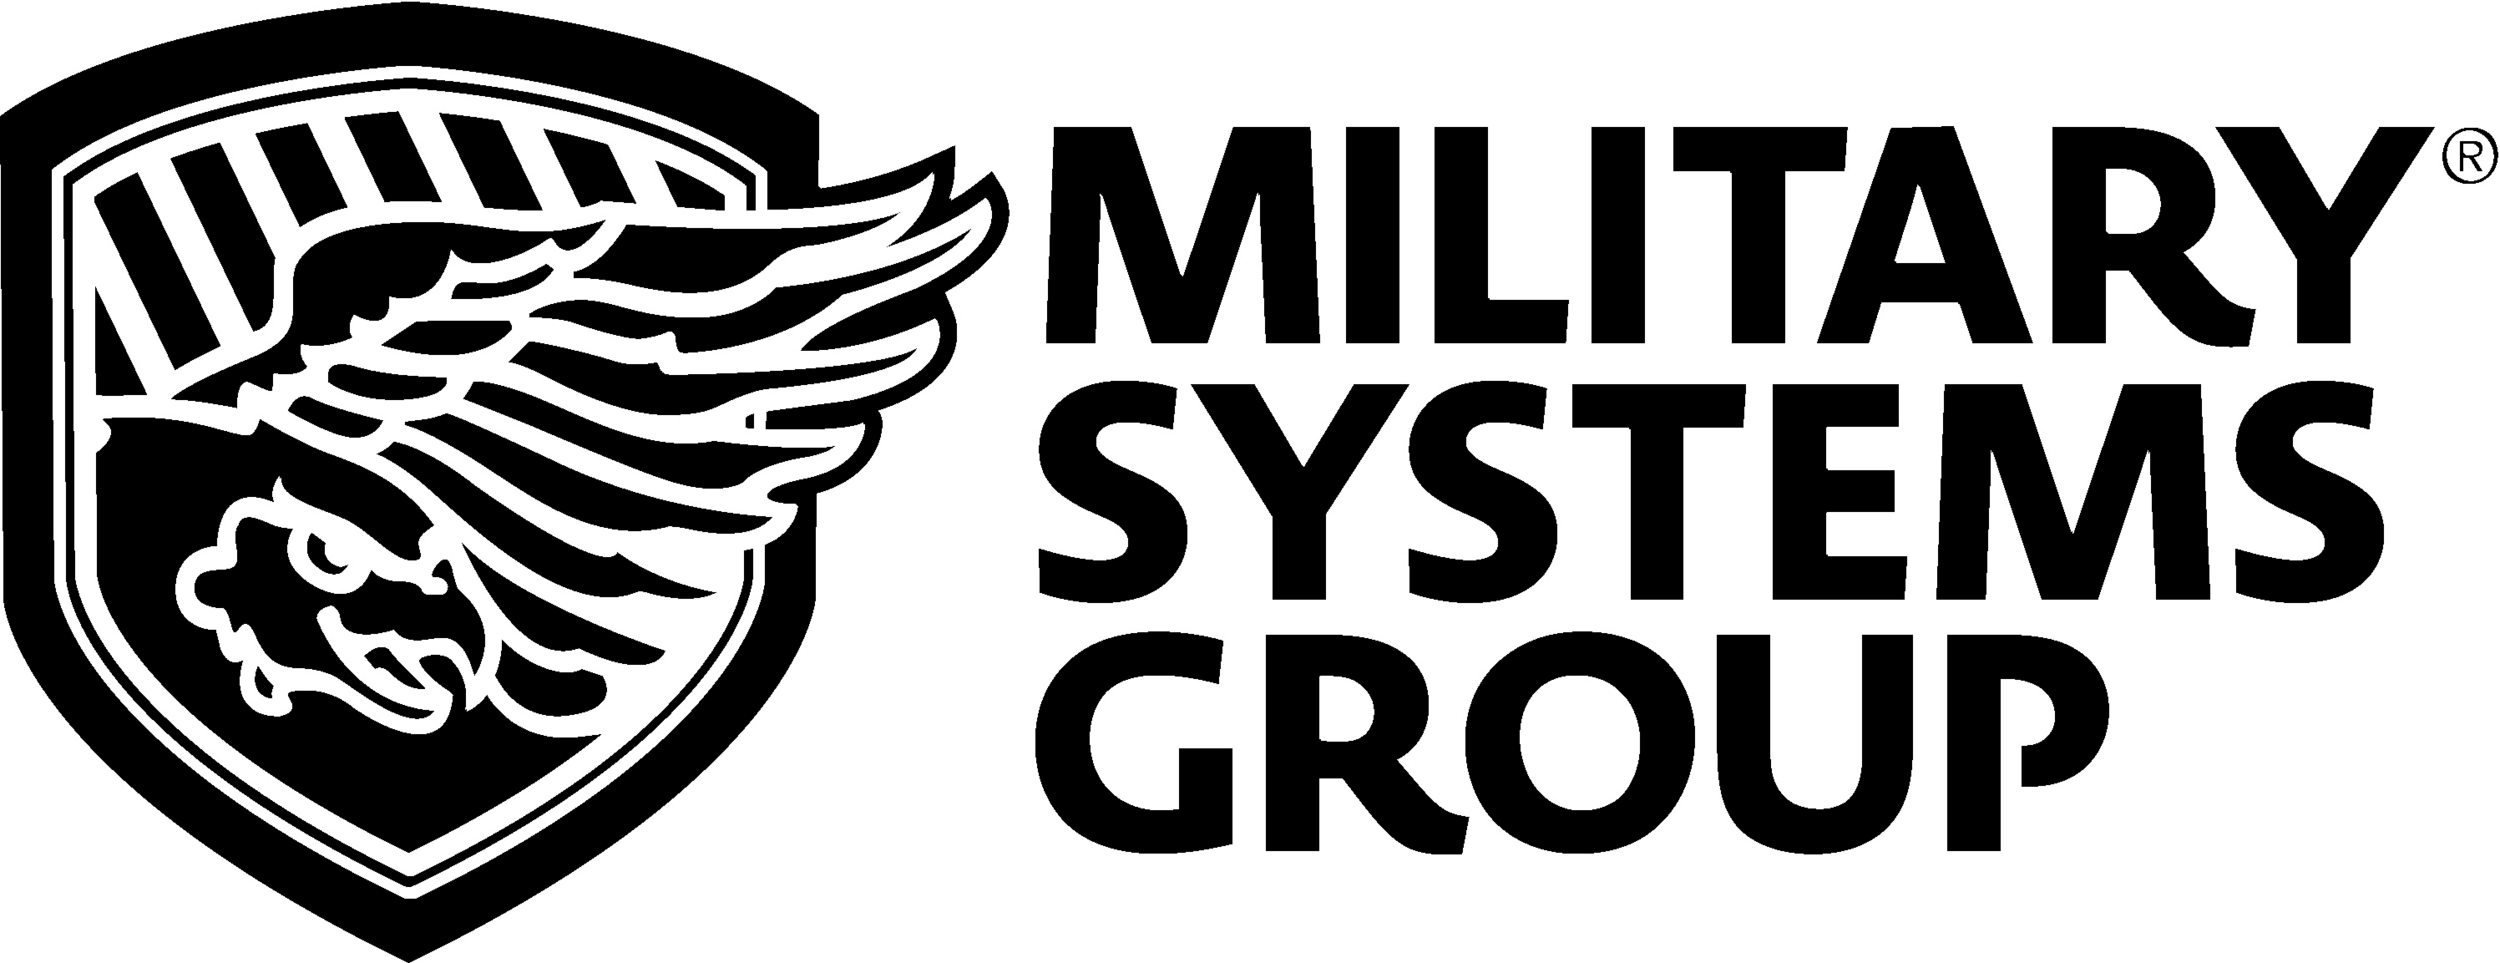 Milsys Group Logo.png